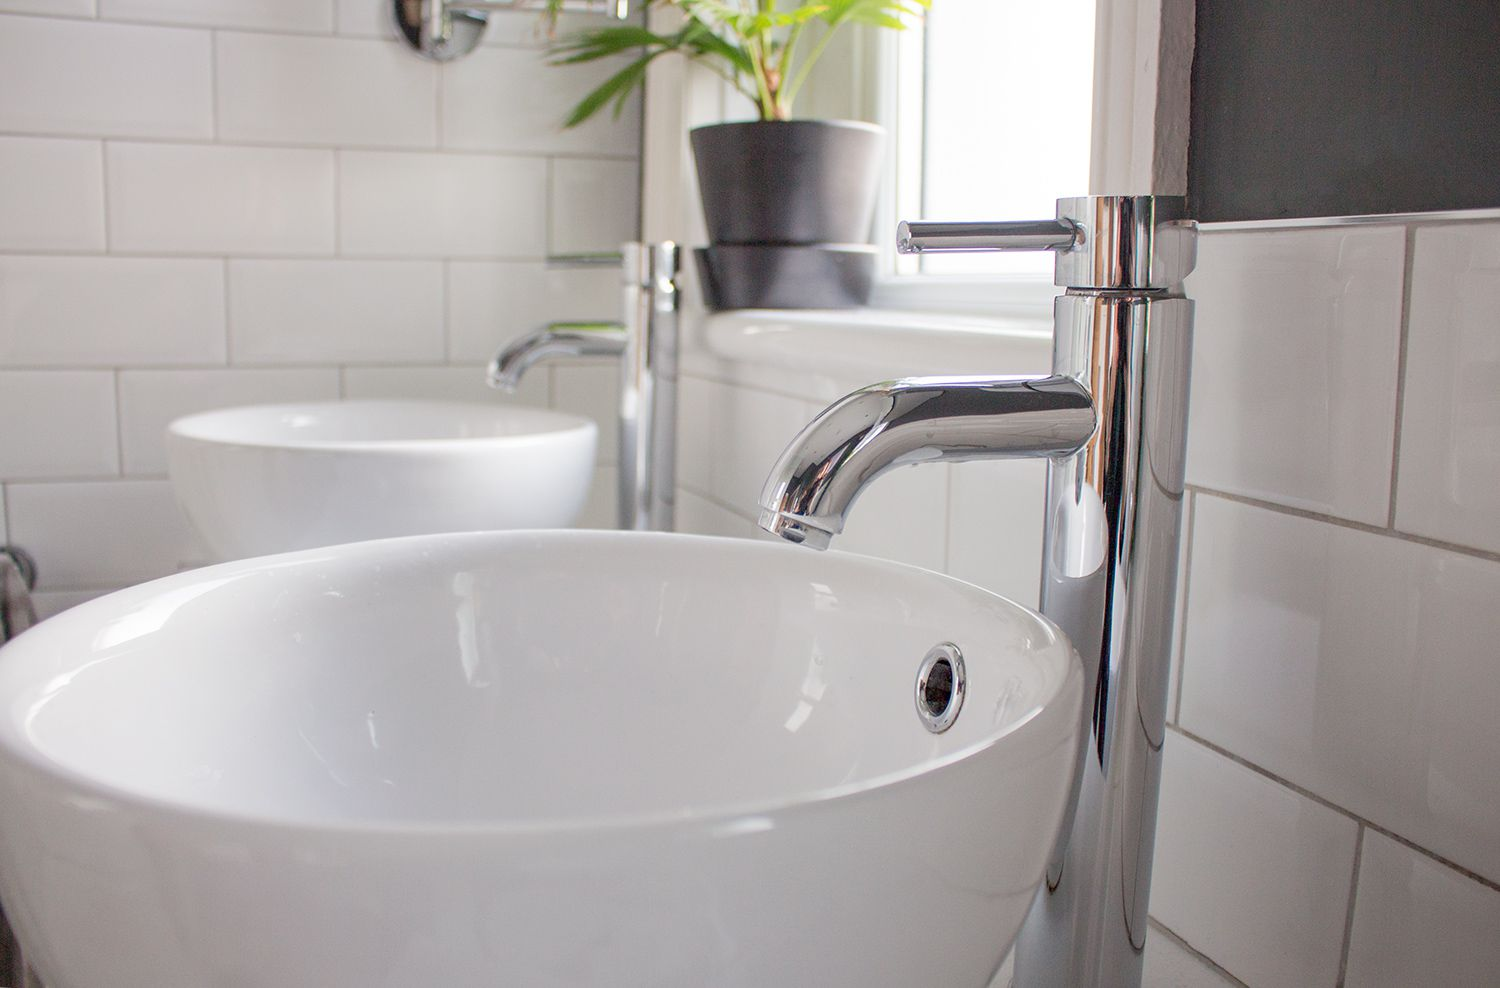 A close up of the two sinks with their tall chrome taps next to them.